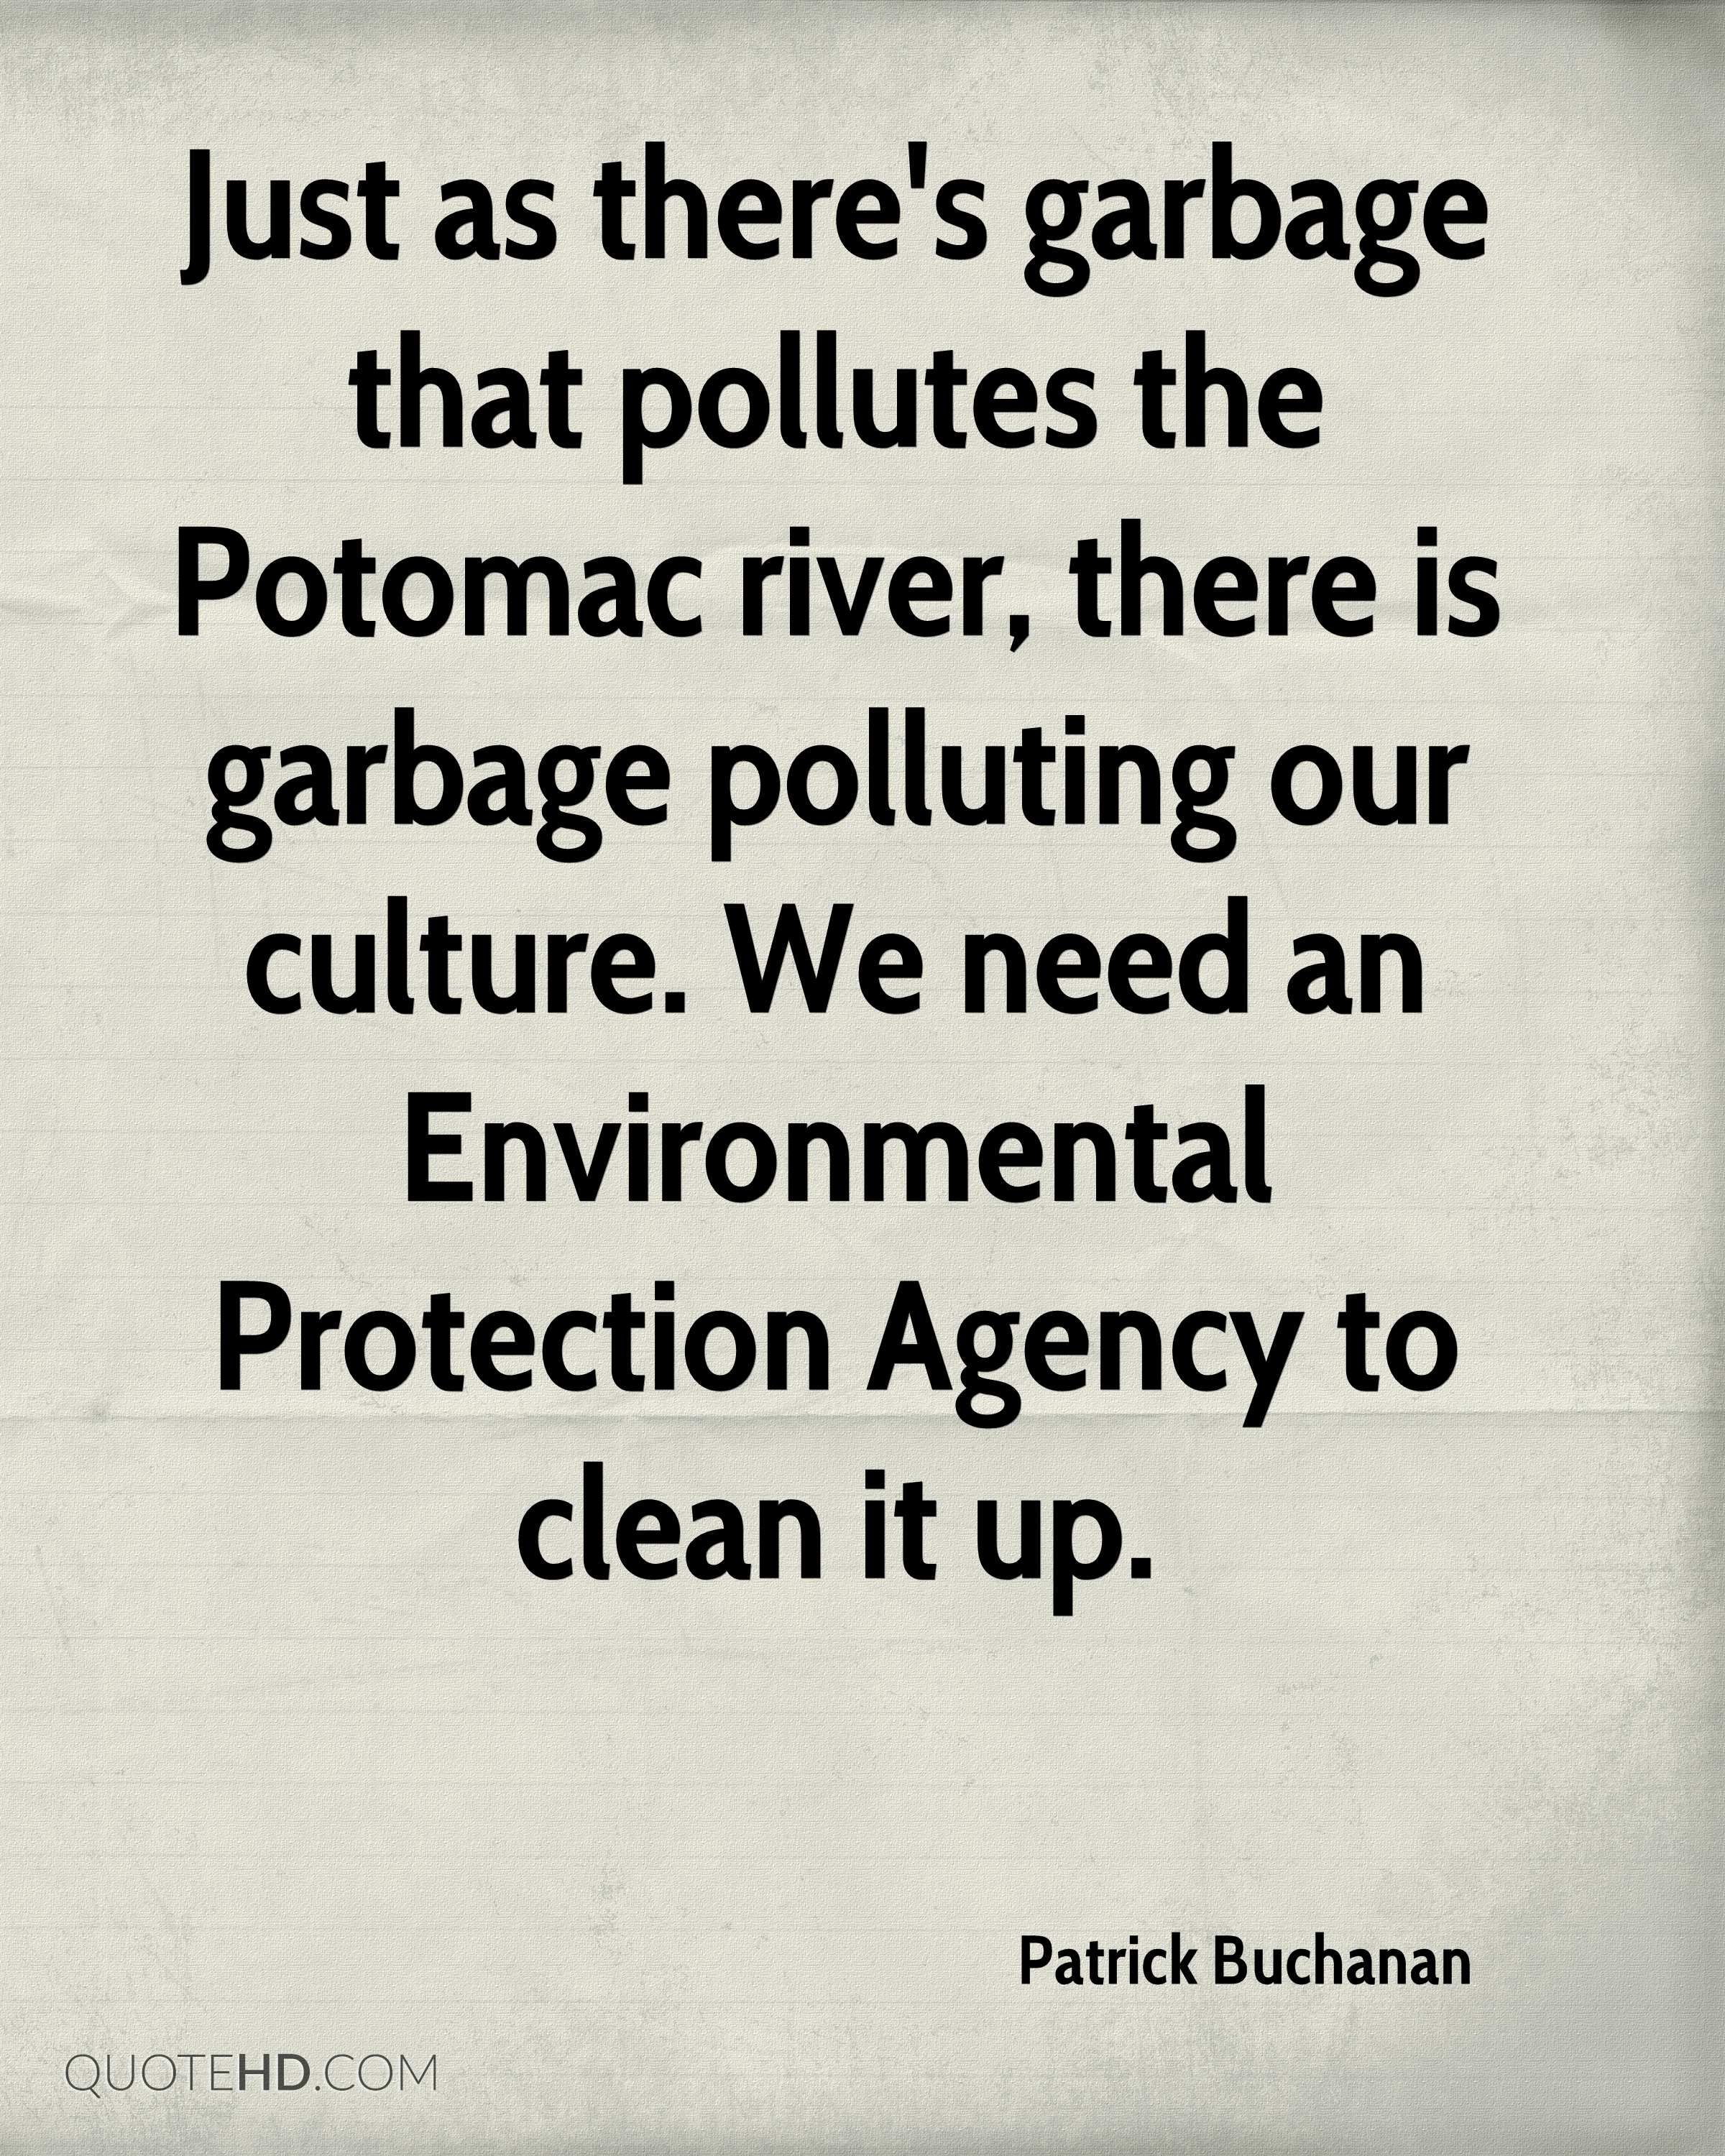 Just as there's garbage that pollutes the Potomac river, there is garbage polluting our culture. We need an Environmental Protection Agency to clean it up.